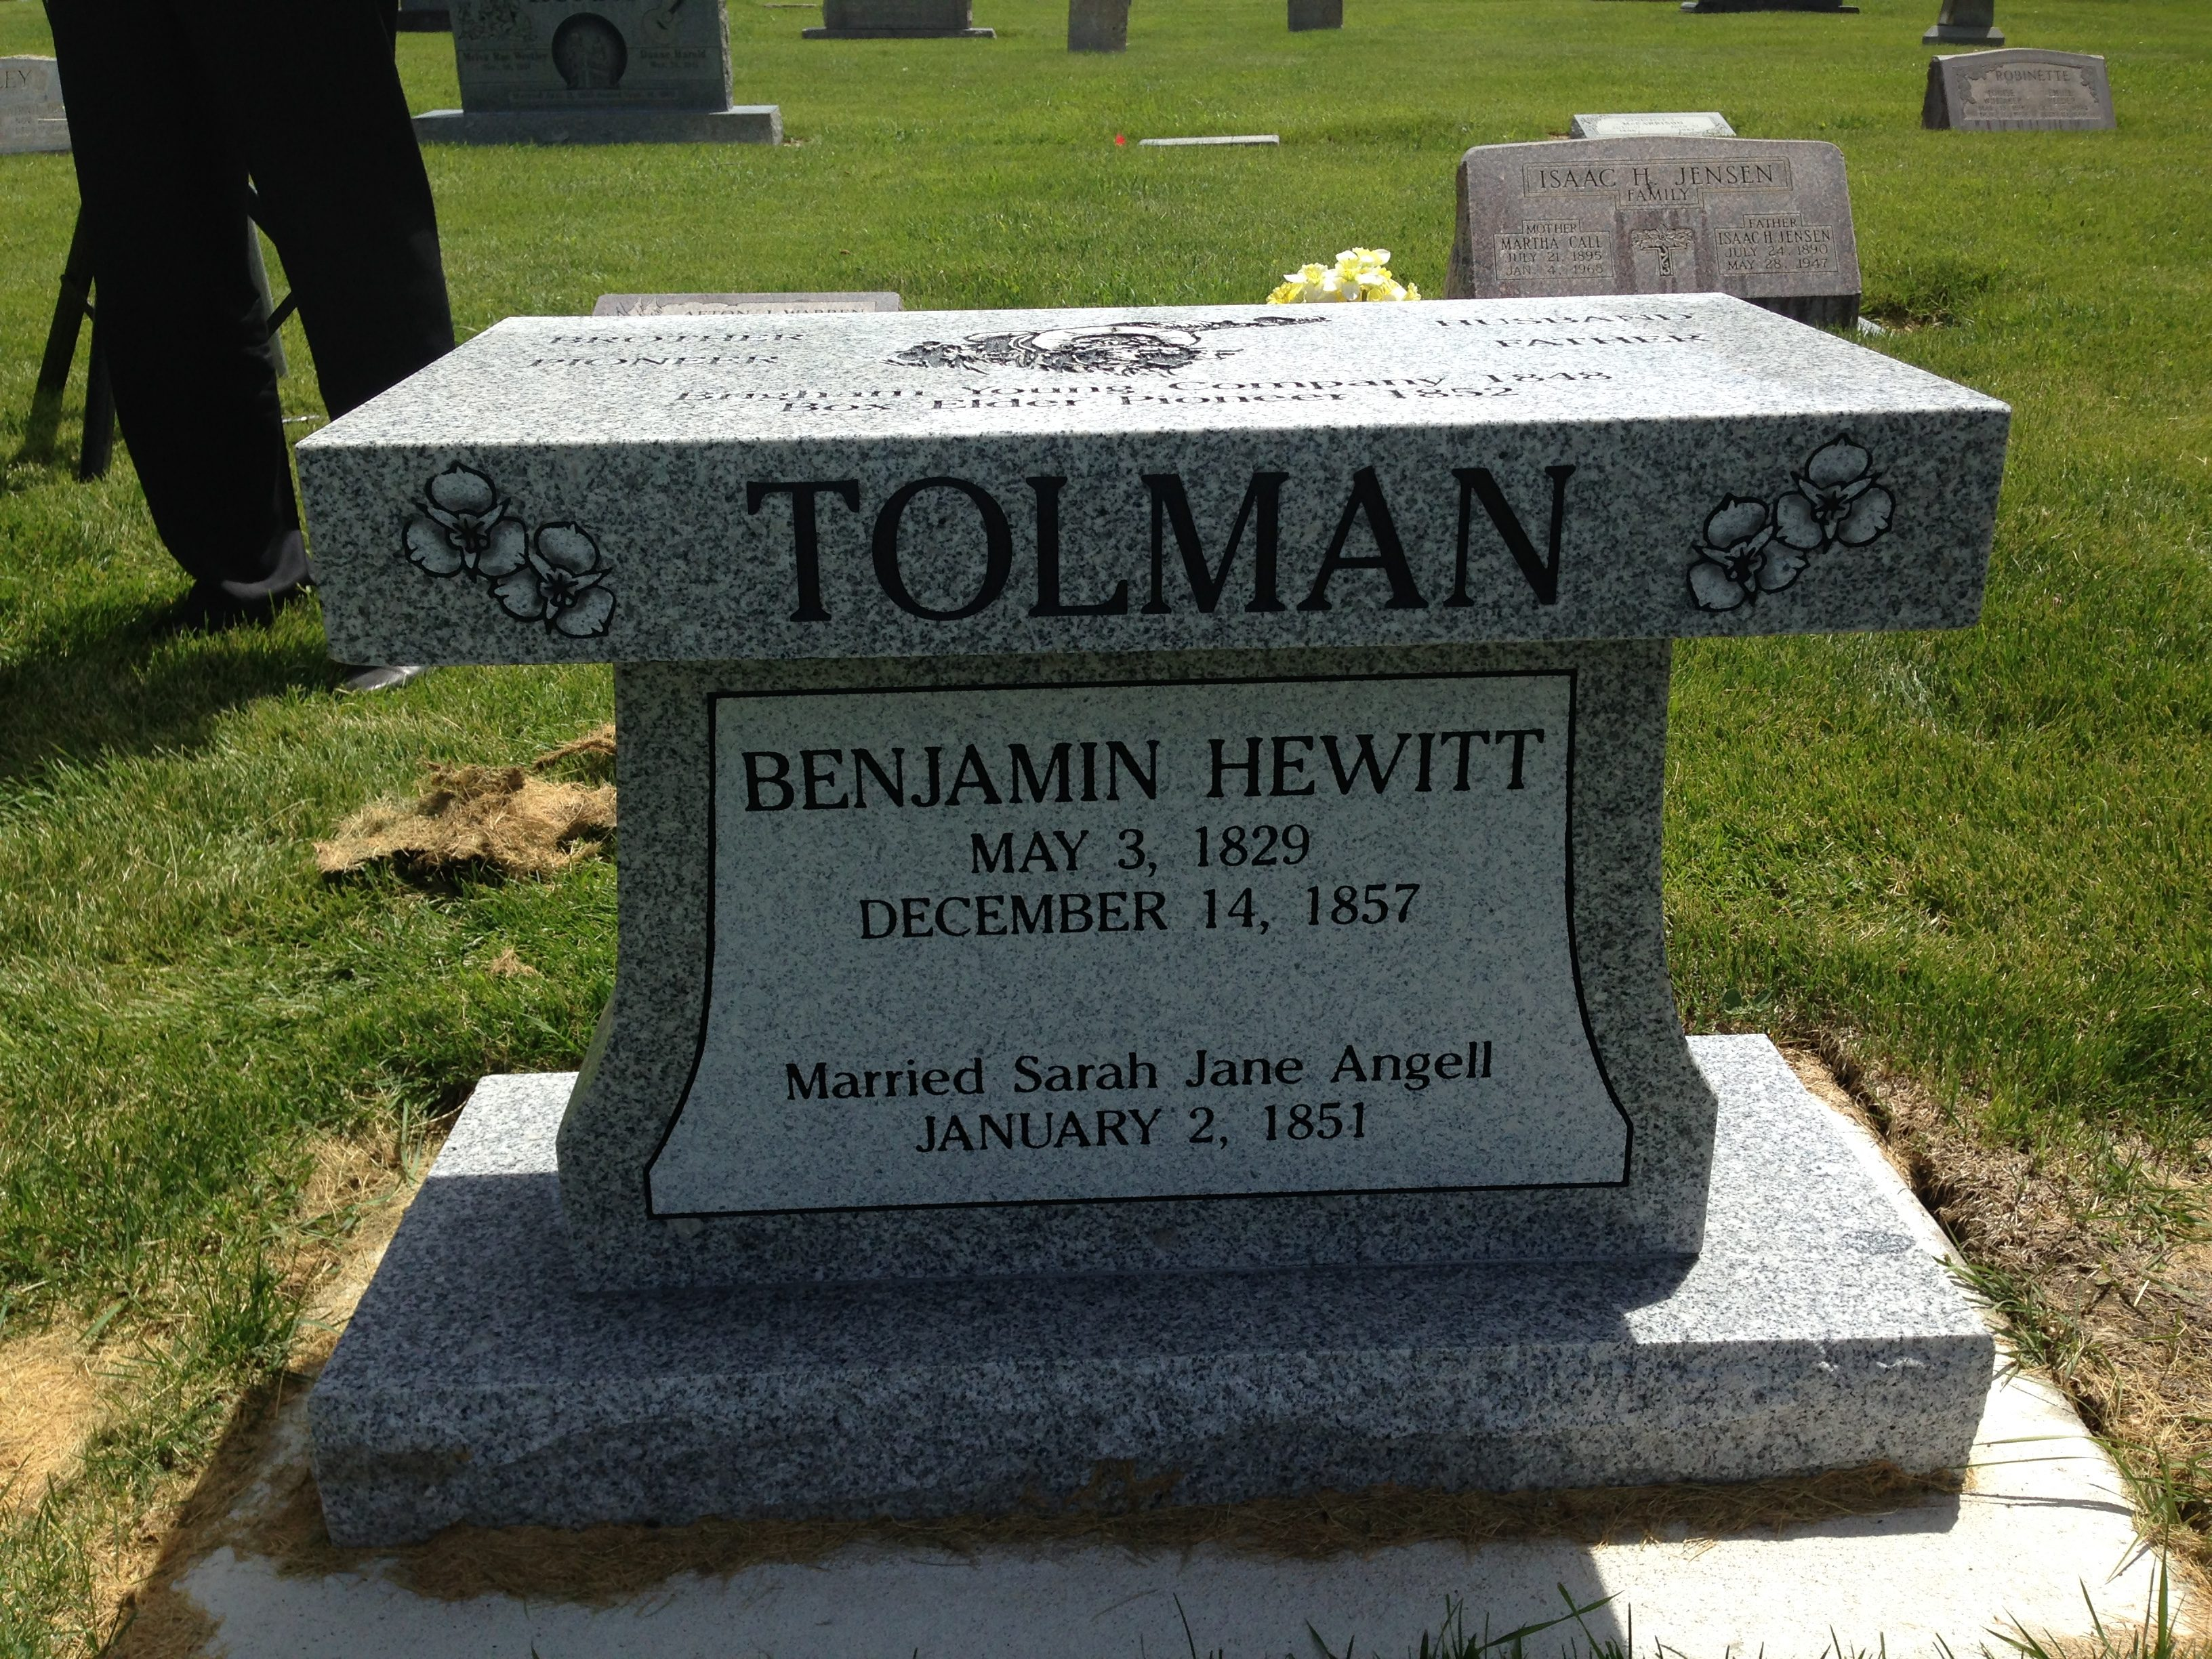 Memorial for Benjamin Hewitt Tolman